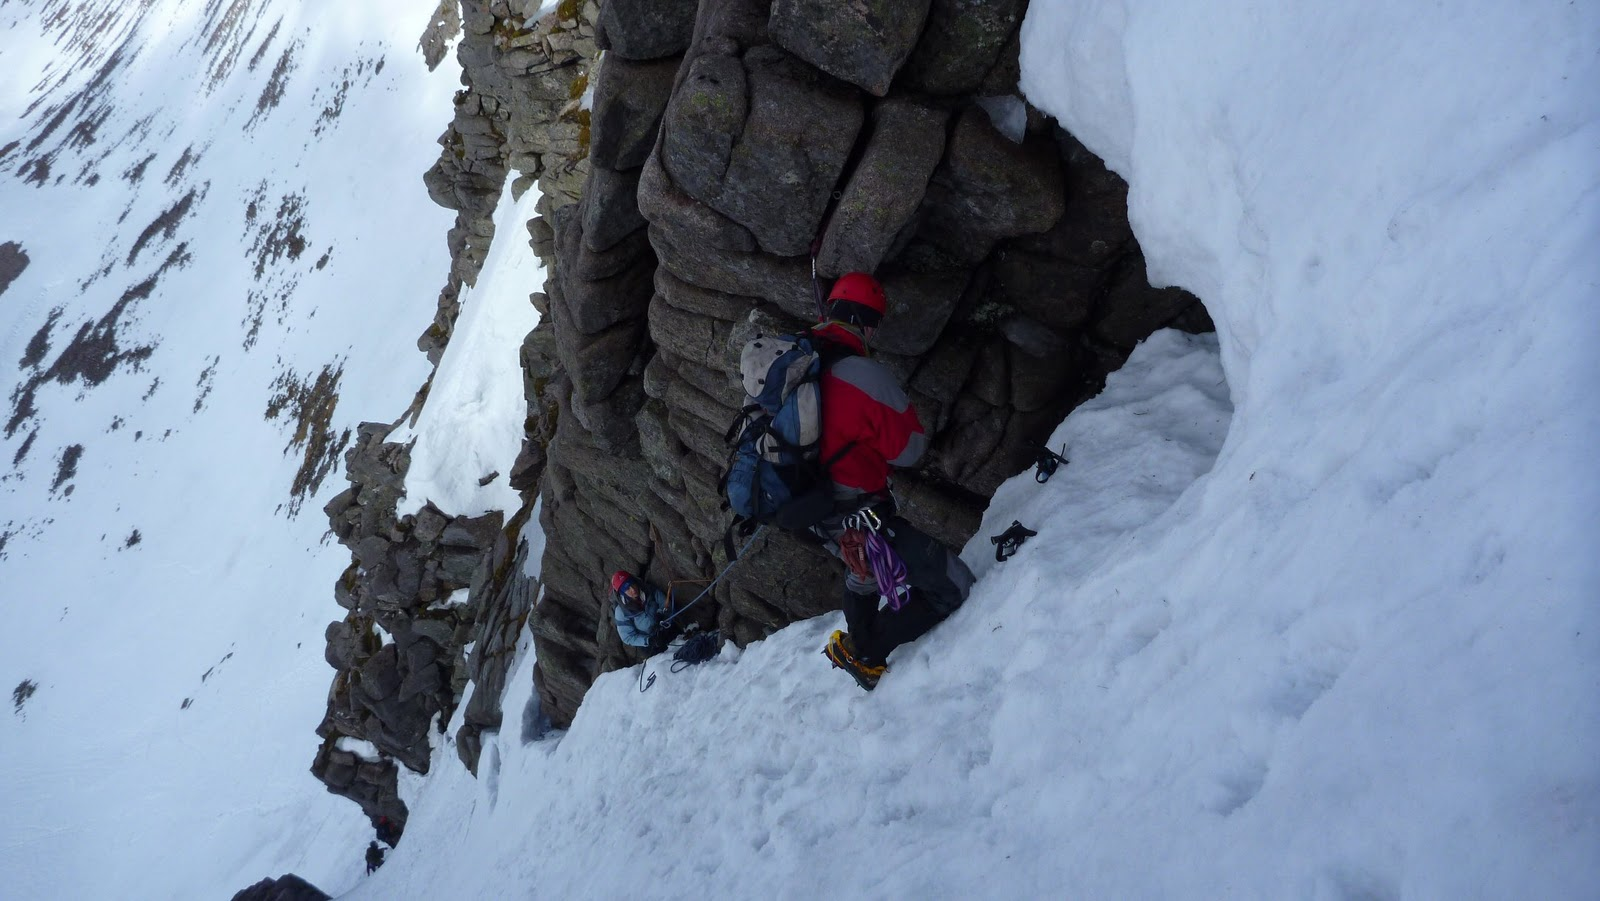 Moving up Jacobs Ladder, Mess Of Potage, Northern Cairngorms, 200 kb